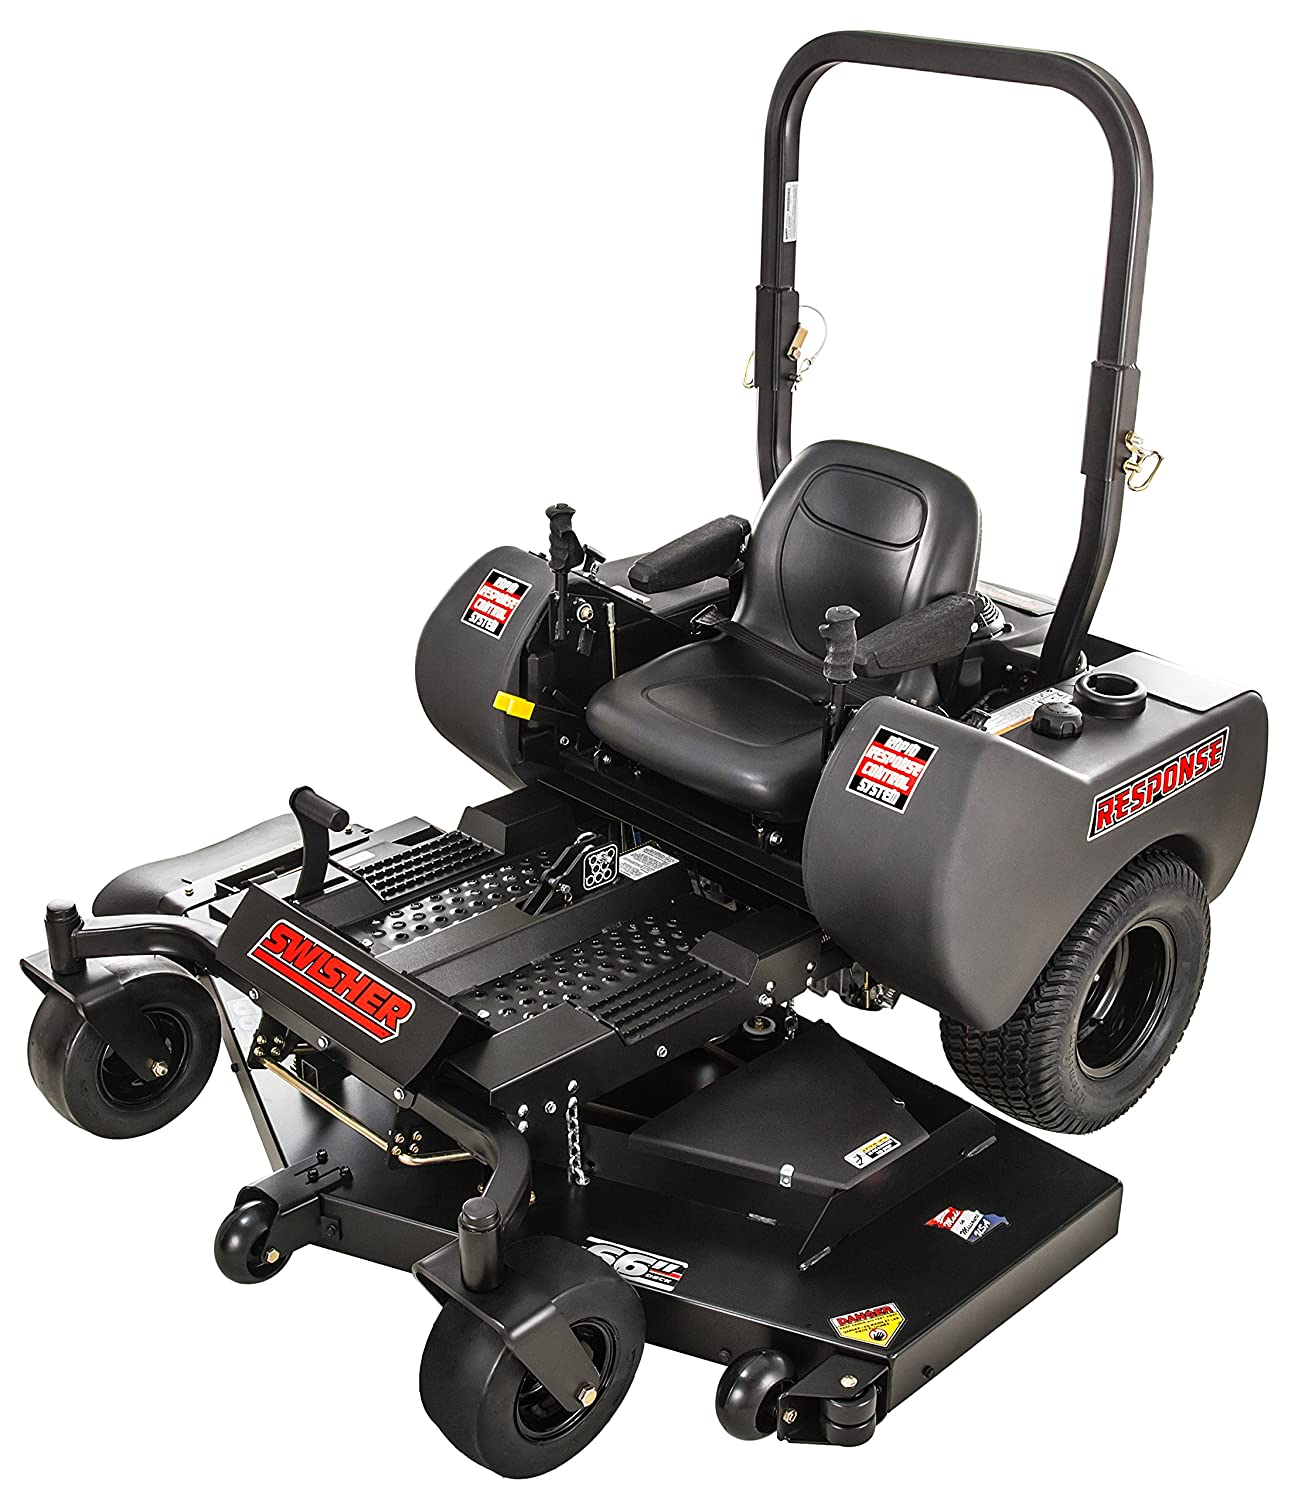 5. Swisher ZTR2366KA - Fastest Zero Turn Mower